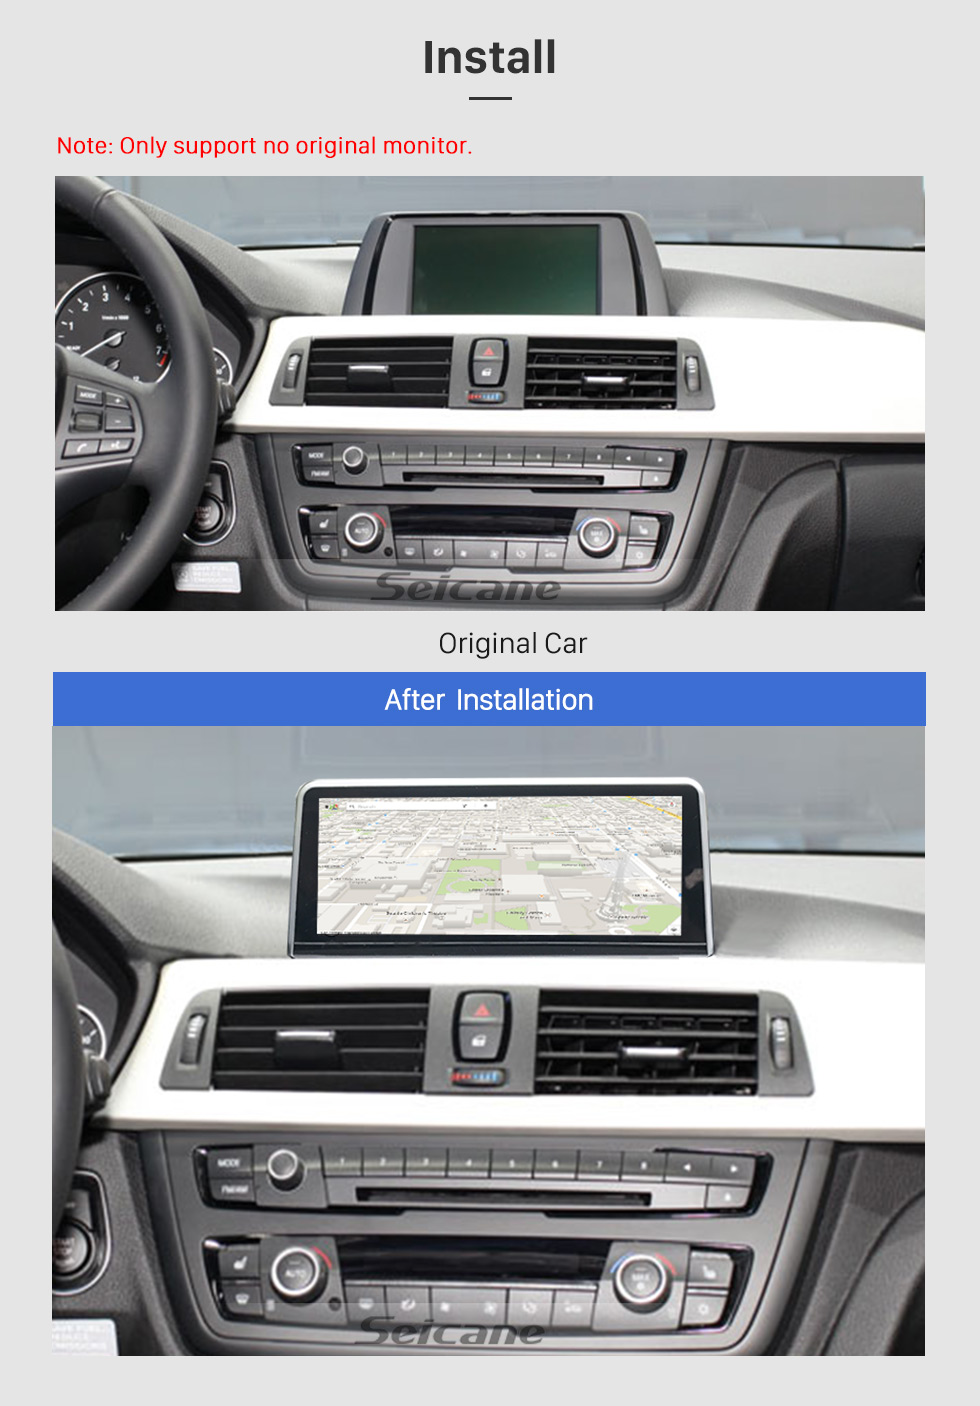 Seicane 10.25 Inch Android 8.1 2018 BMW 3 Series/4 Series Car Stereo Radio Head Unit GPS Navigation System Bluetooth Support USB WIFI Rearview Camera Steering Wheel Control